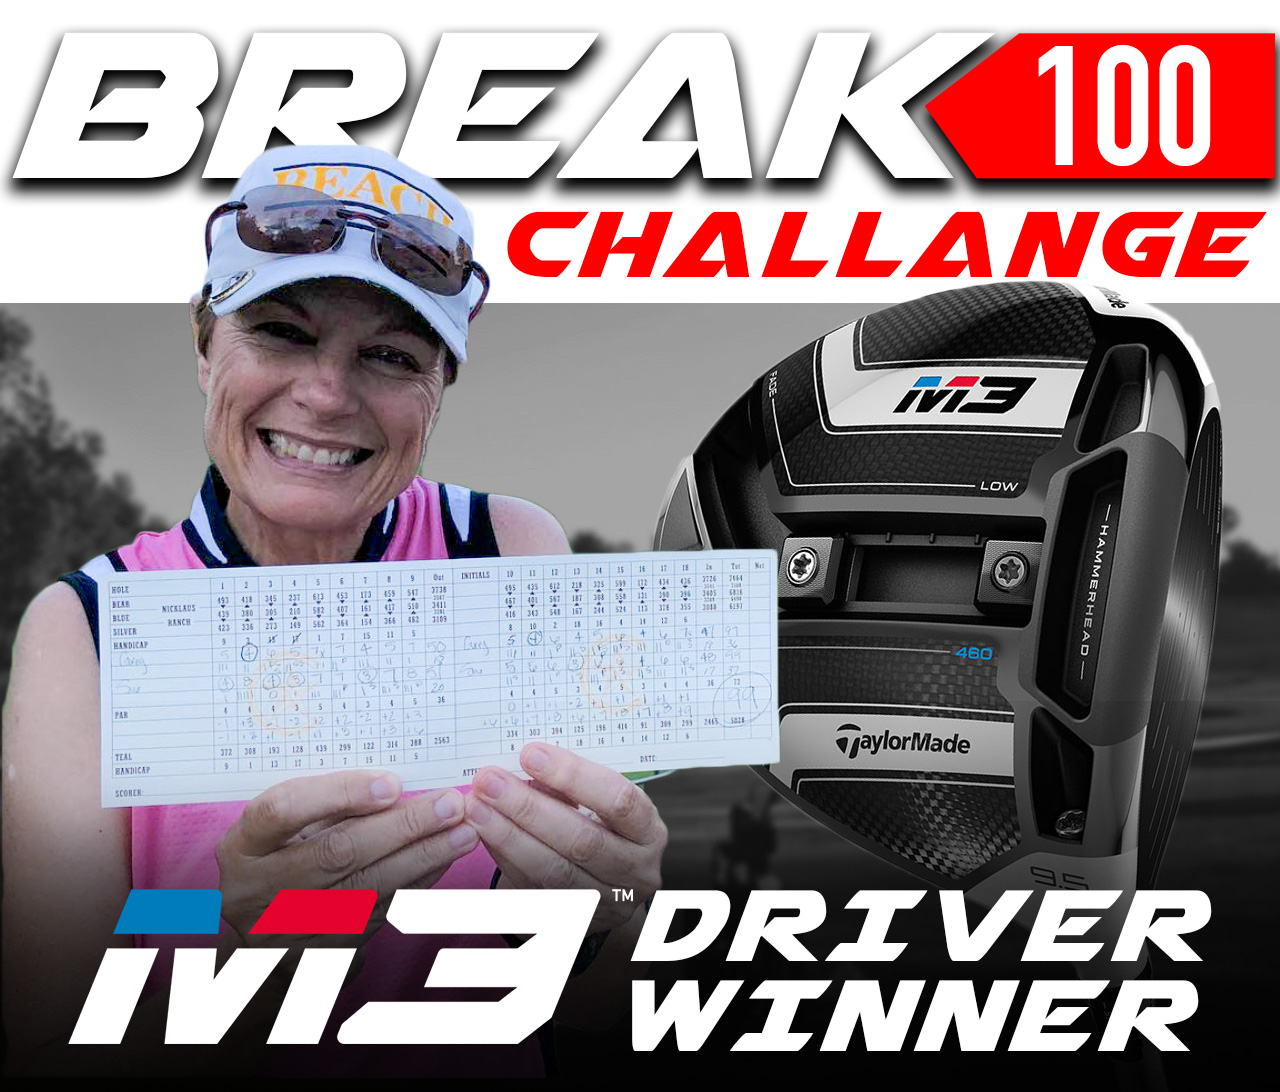 BREAK 100 CHALLENGE WINNER ANNOUNCED